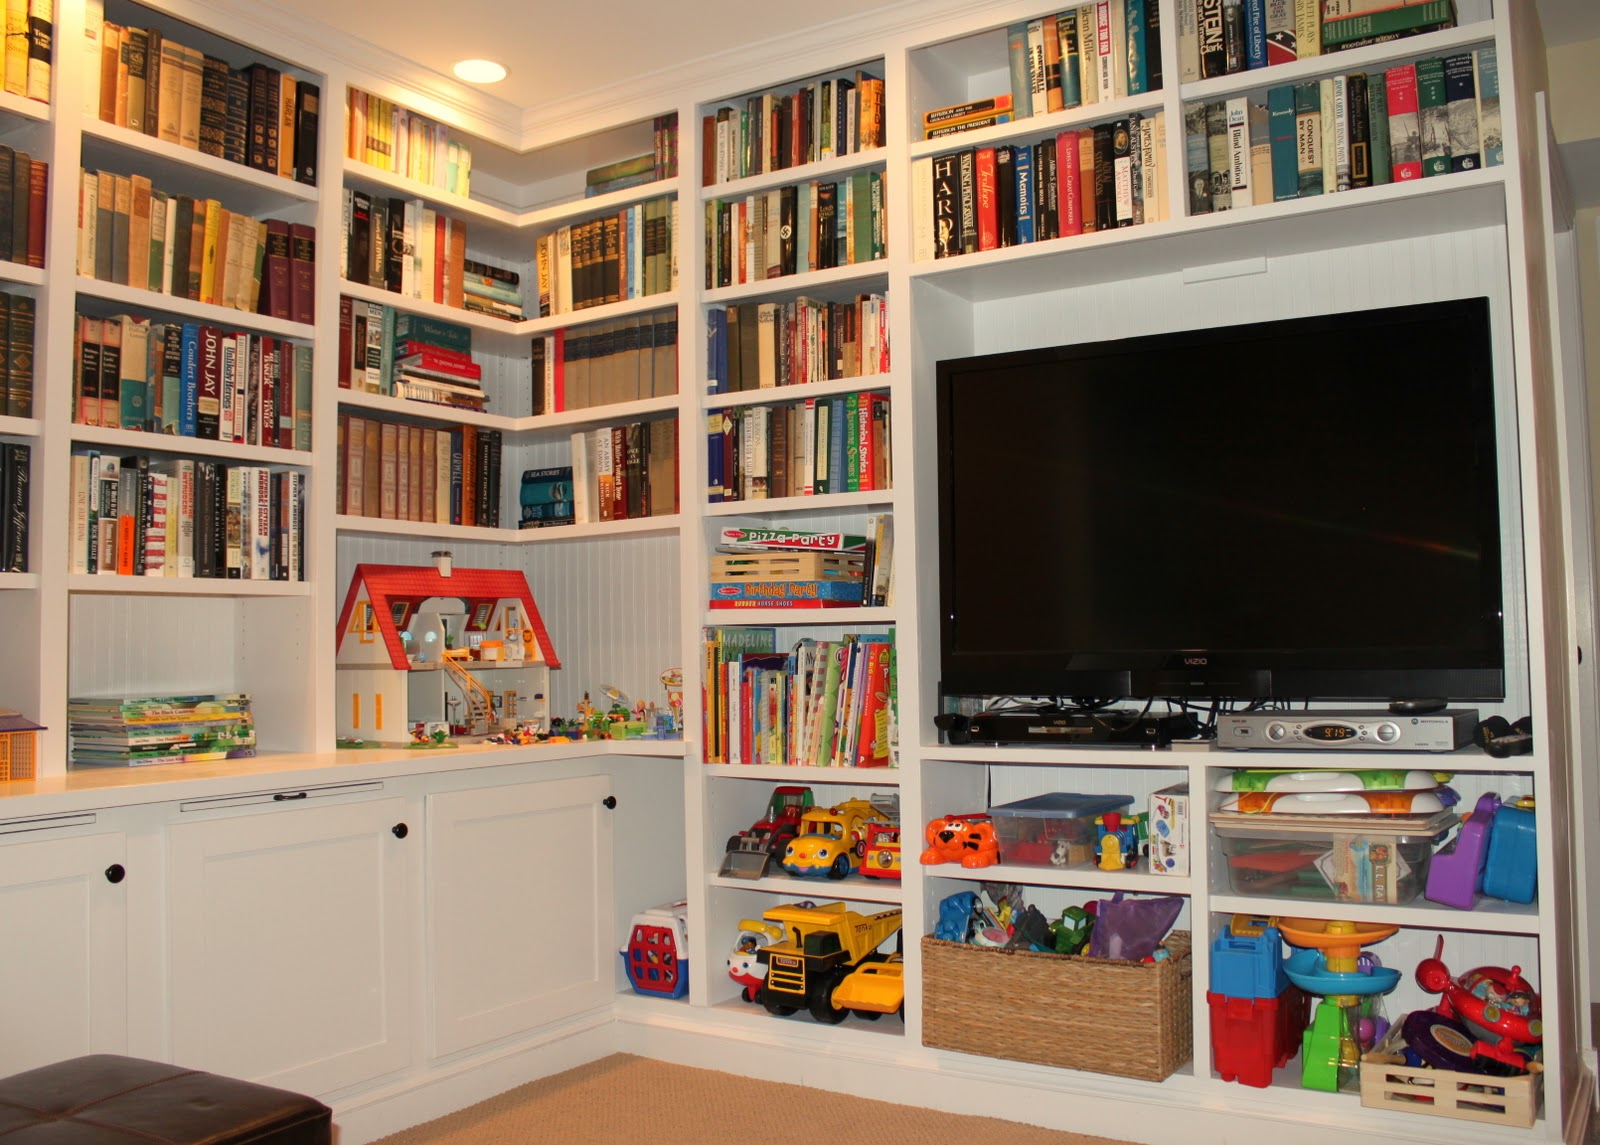 HOUSEography: Den: Styling the Bookshelves